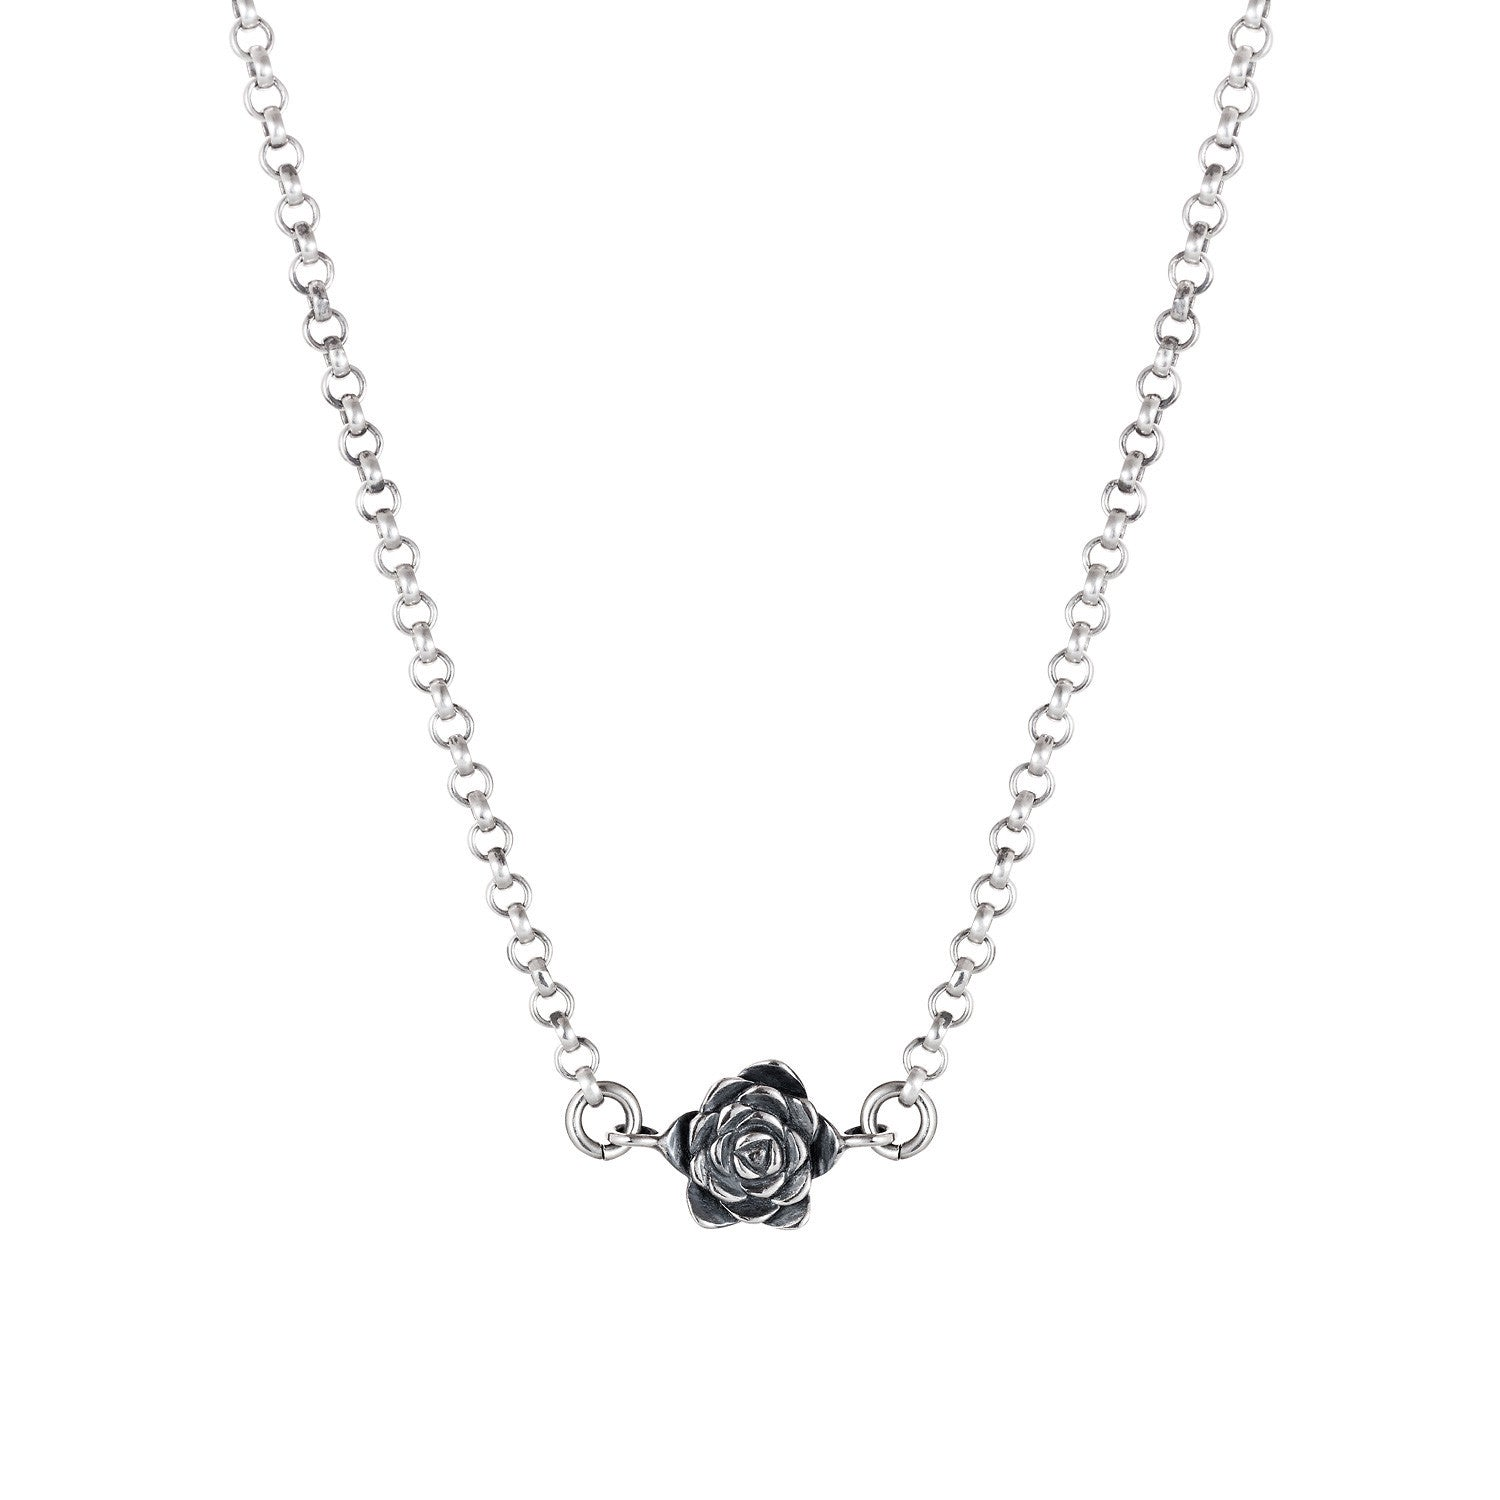 Dark Silver Echeveria Succulent Necklace